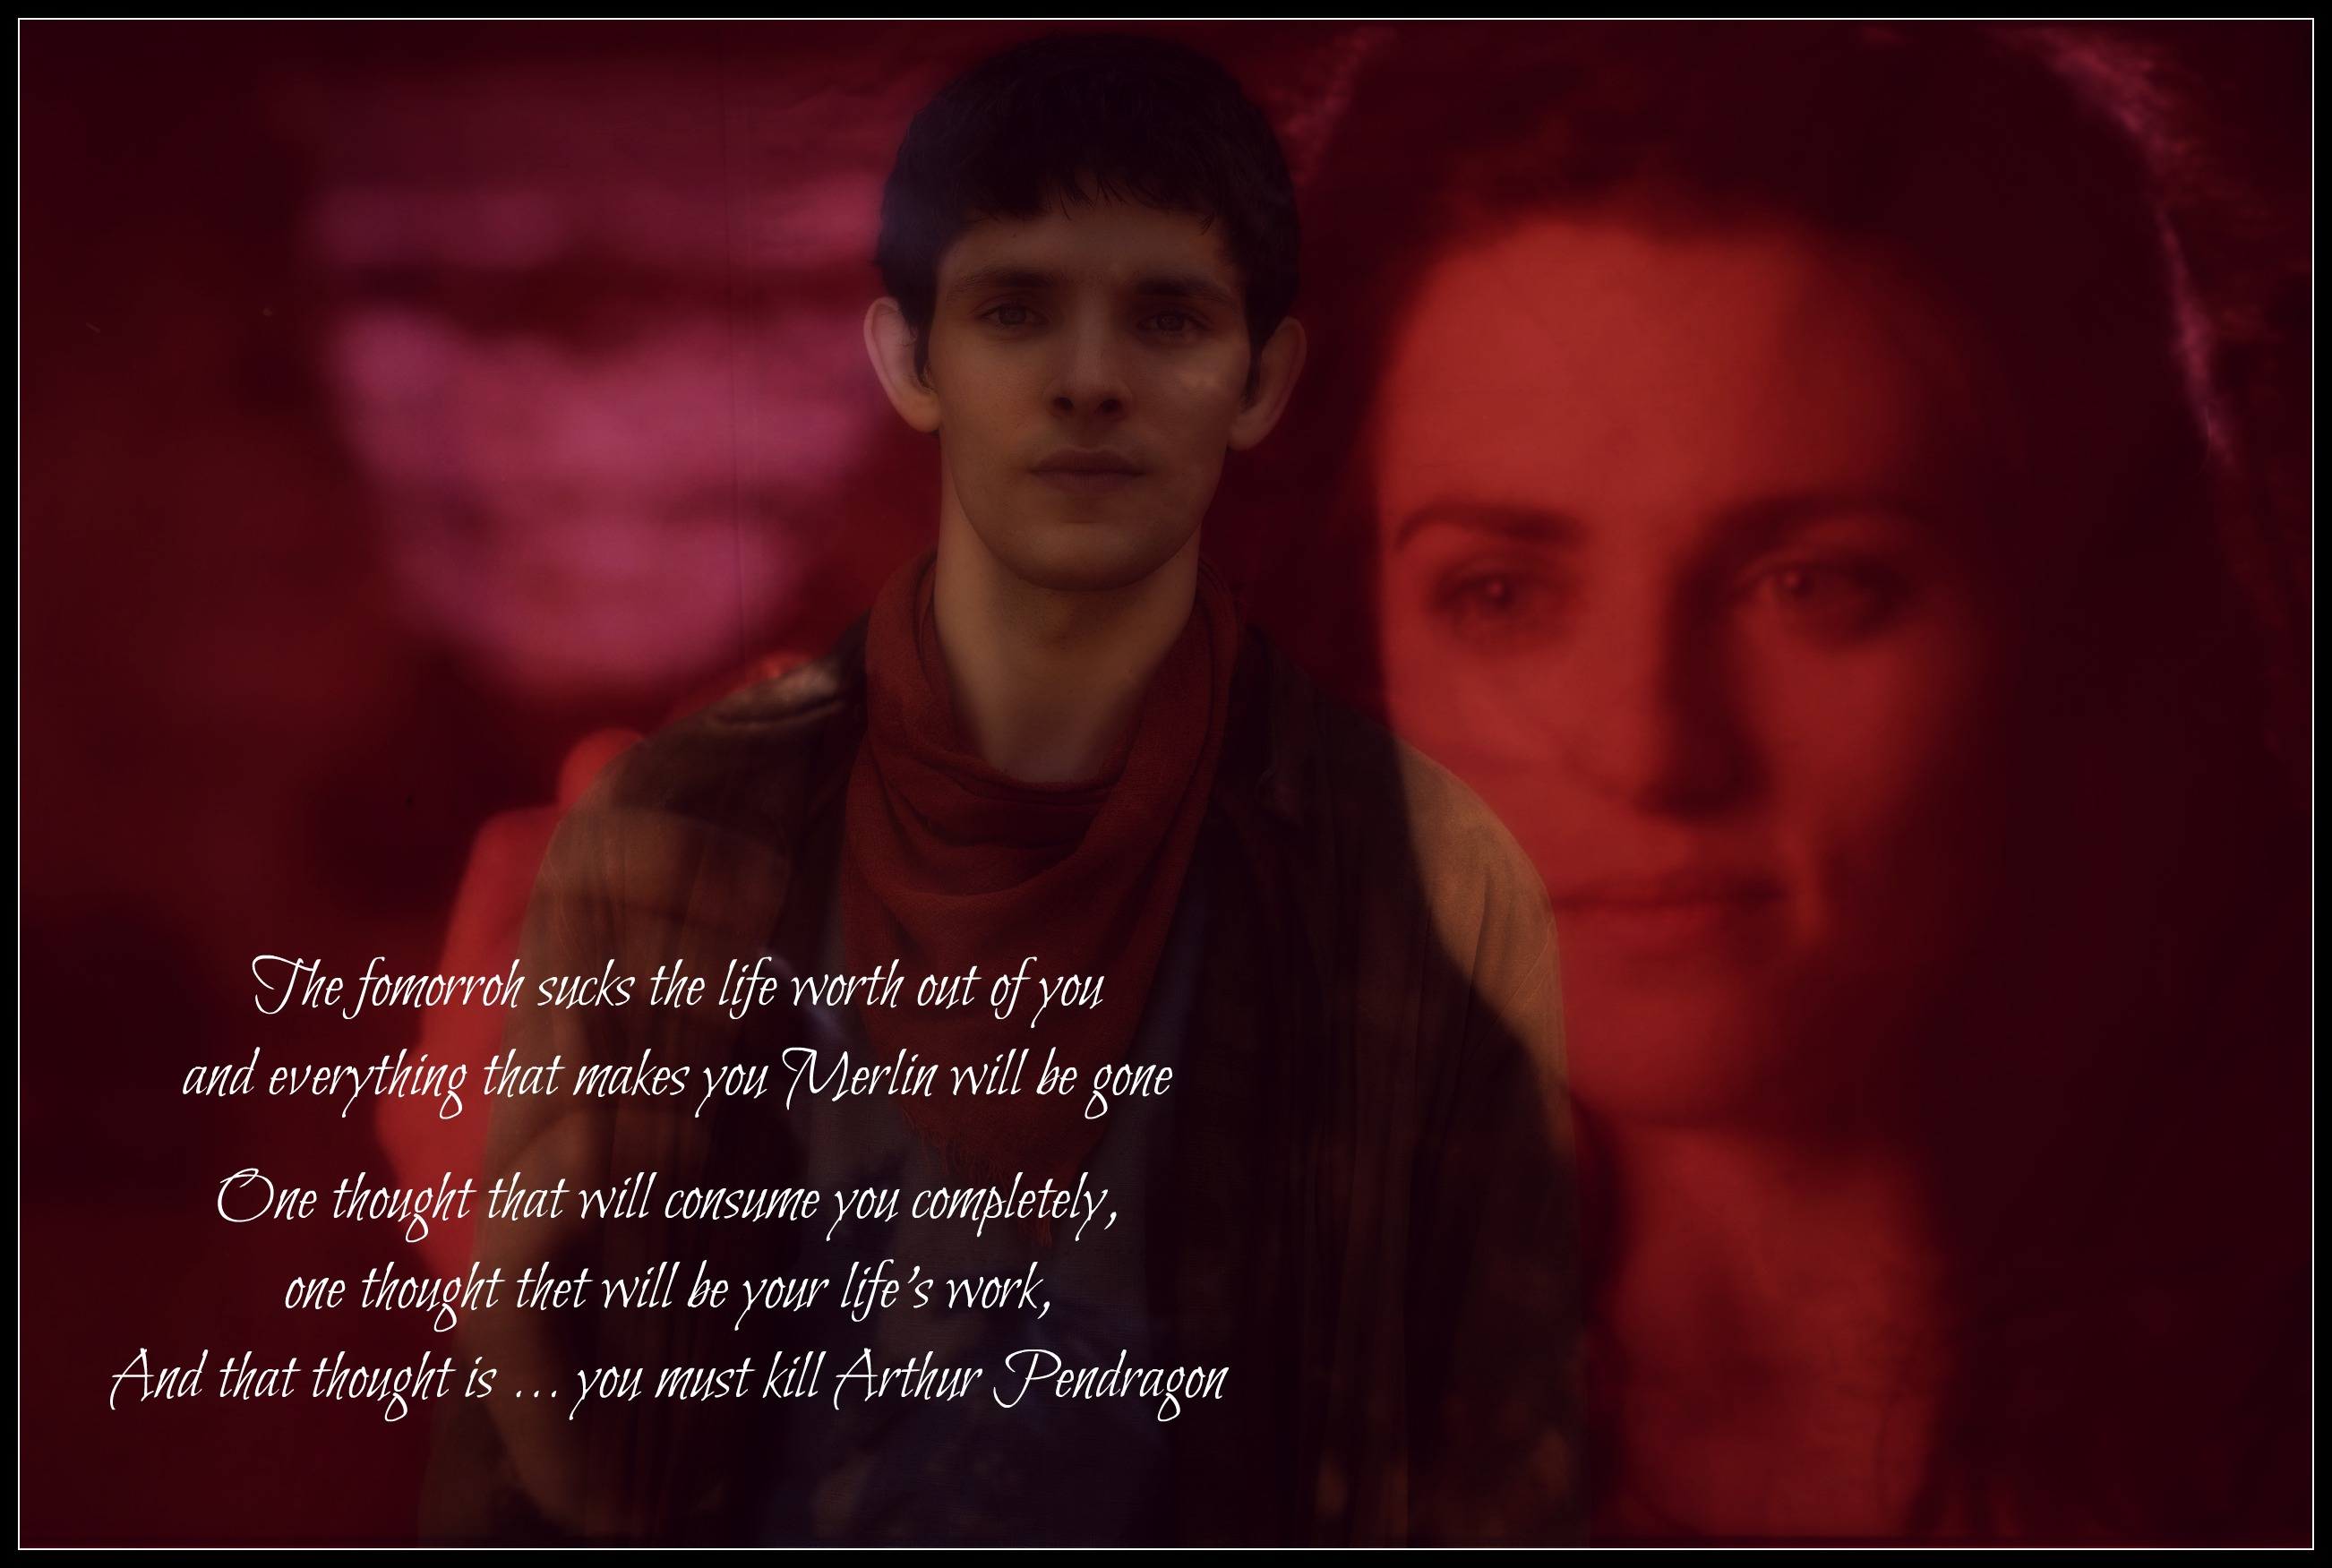 Tv Quotes About Friendship Servant Of Two Masters  Merlin Wiki  Fandom Poweredwikia